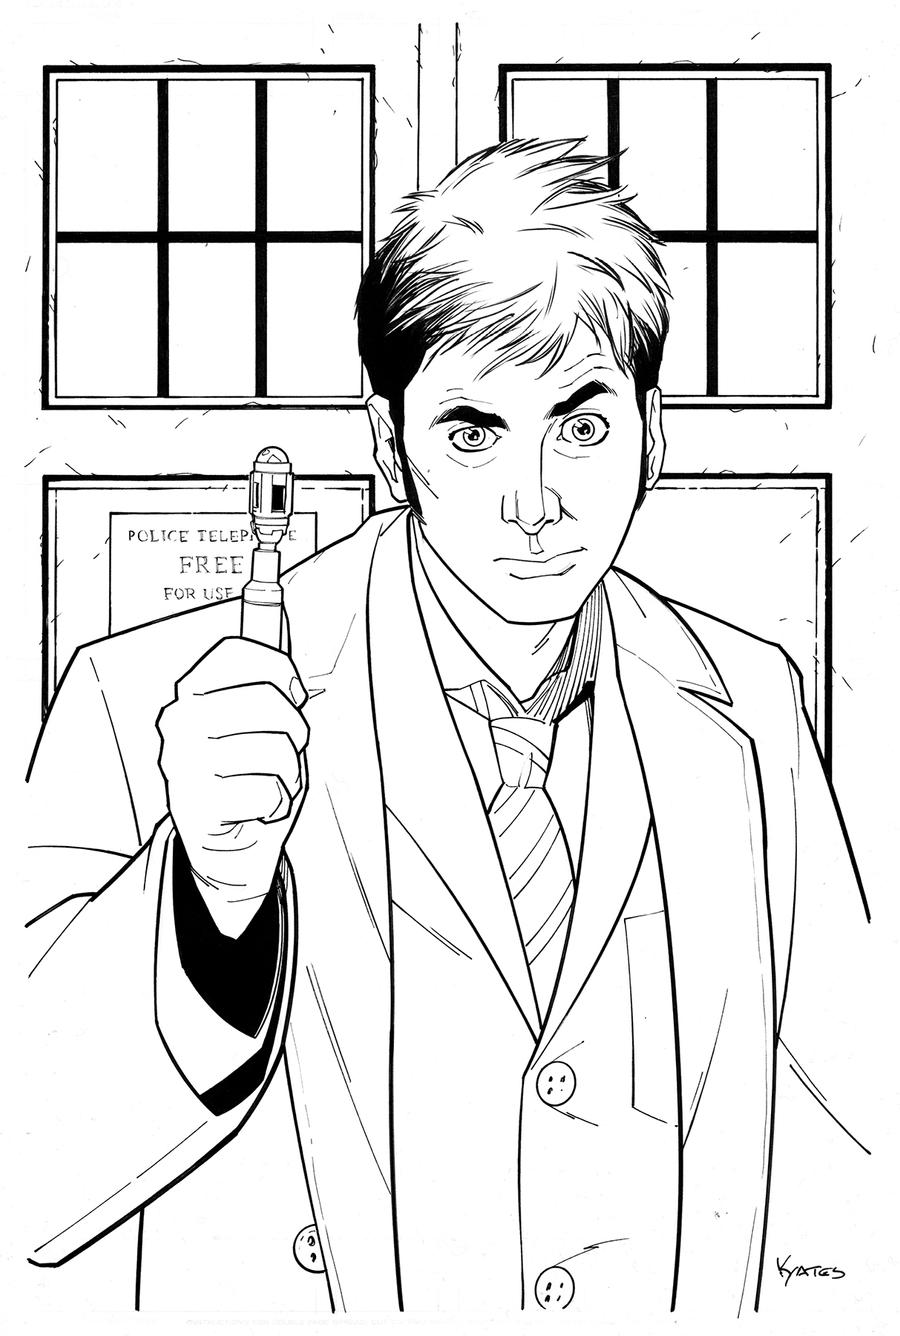 10th doctor who by kellyyates on deviantart for Doctor who tardis coloring pages